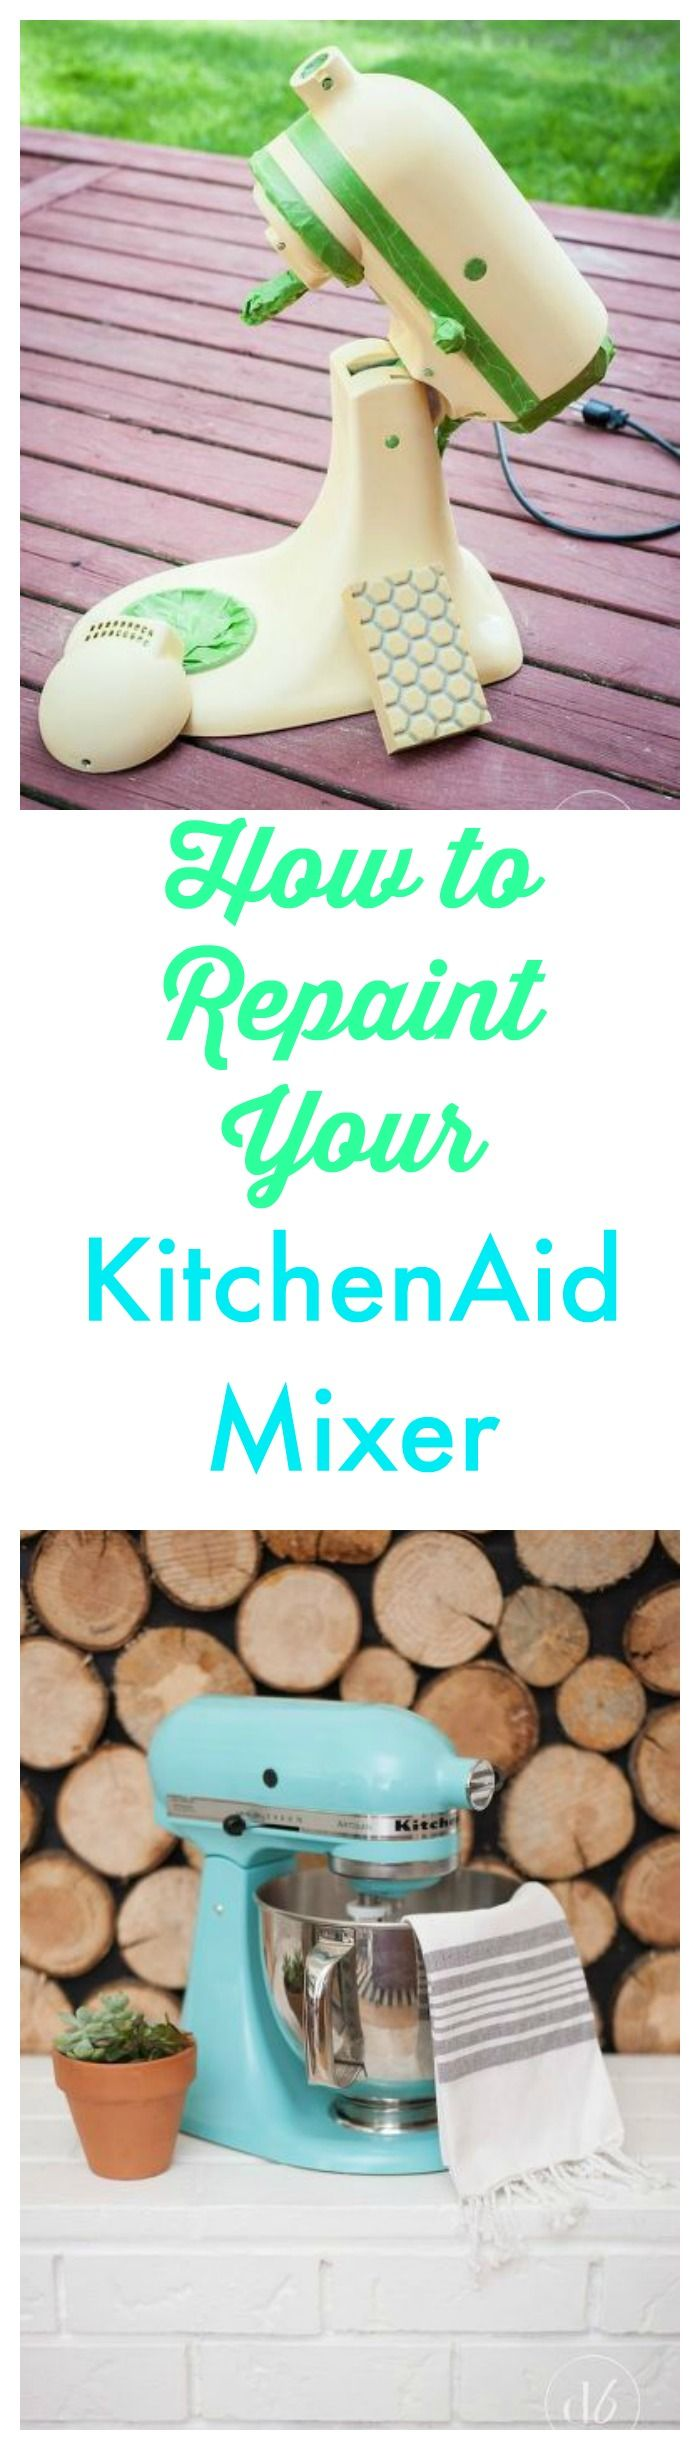 How to repaint your KitchenAid Mixer and get great results. http://www.hometalk.com/l/EJq